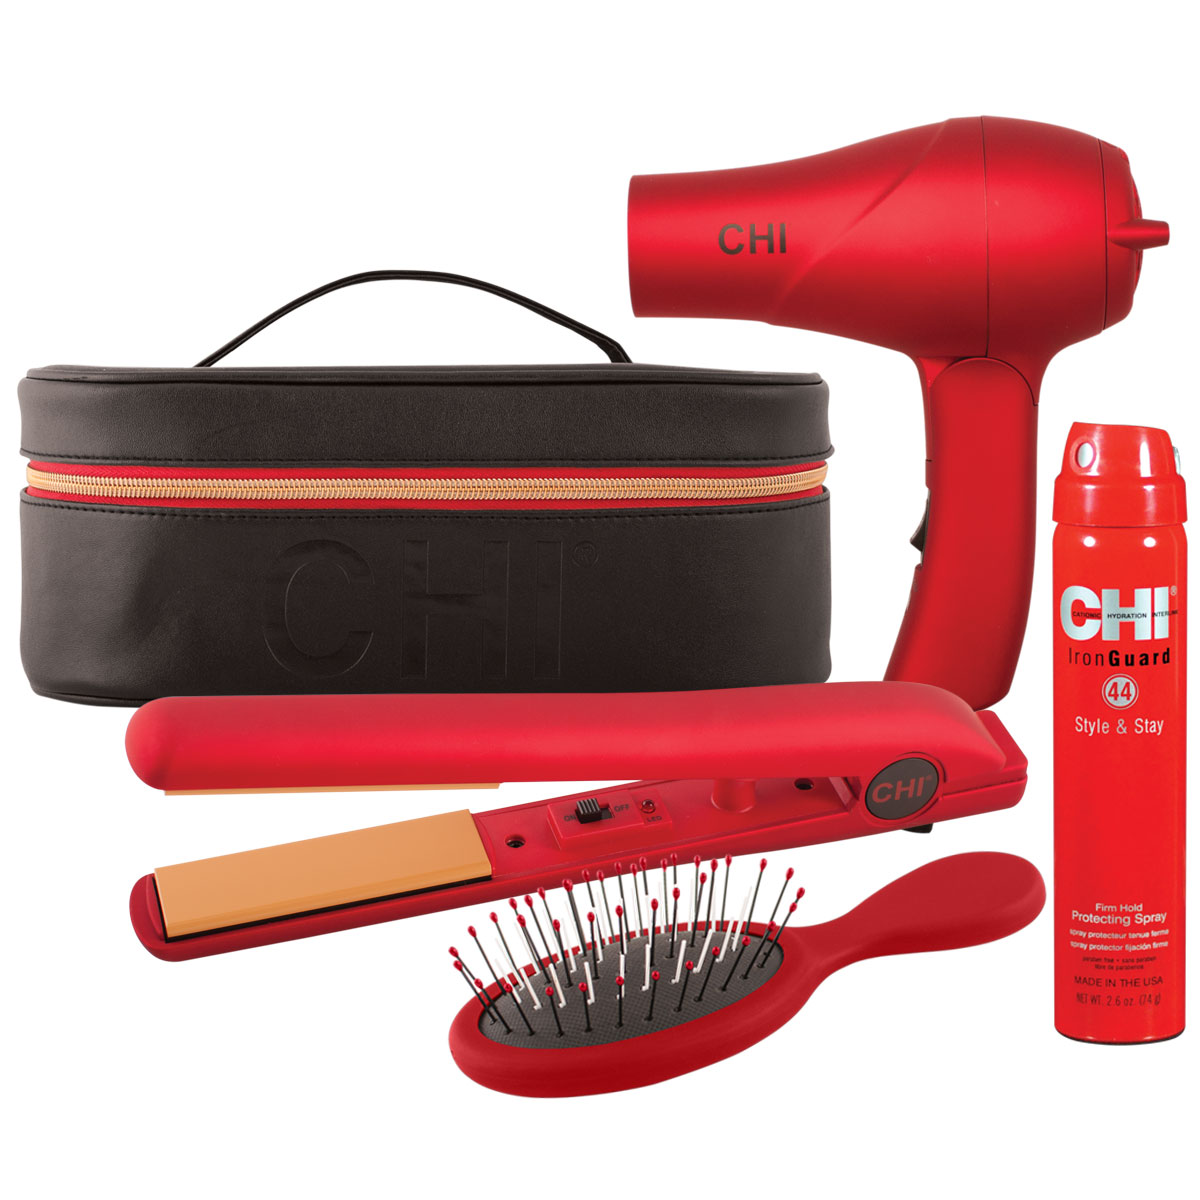 Best Travel Beauty Products, Going Somewhere? Take Your CHI Favorites Along, CHI Haircare / Professional Haircare Products